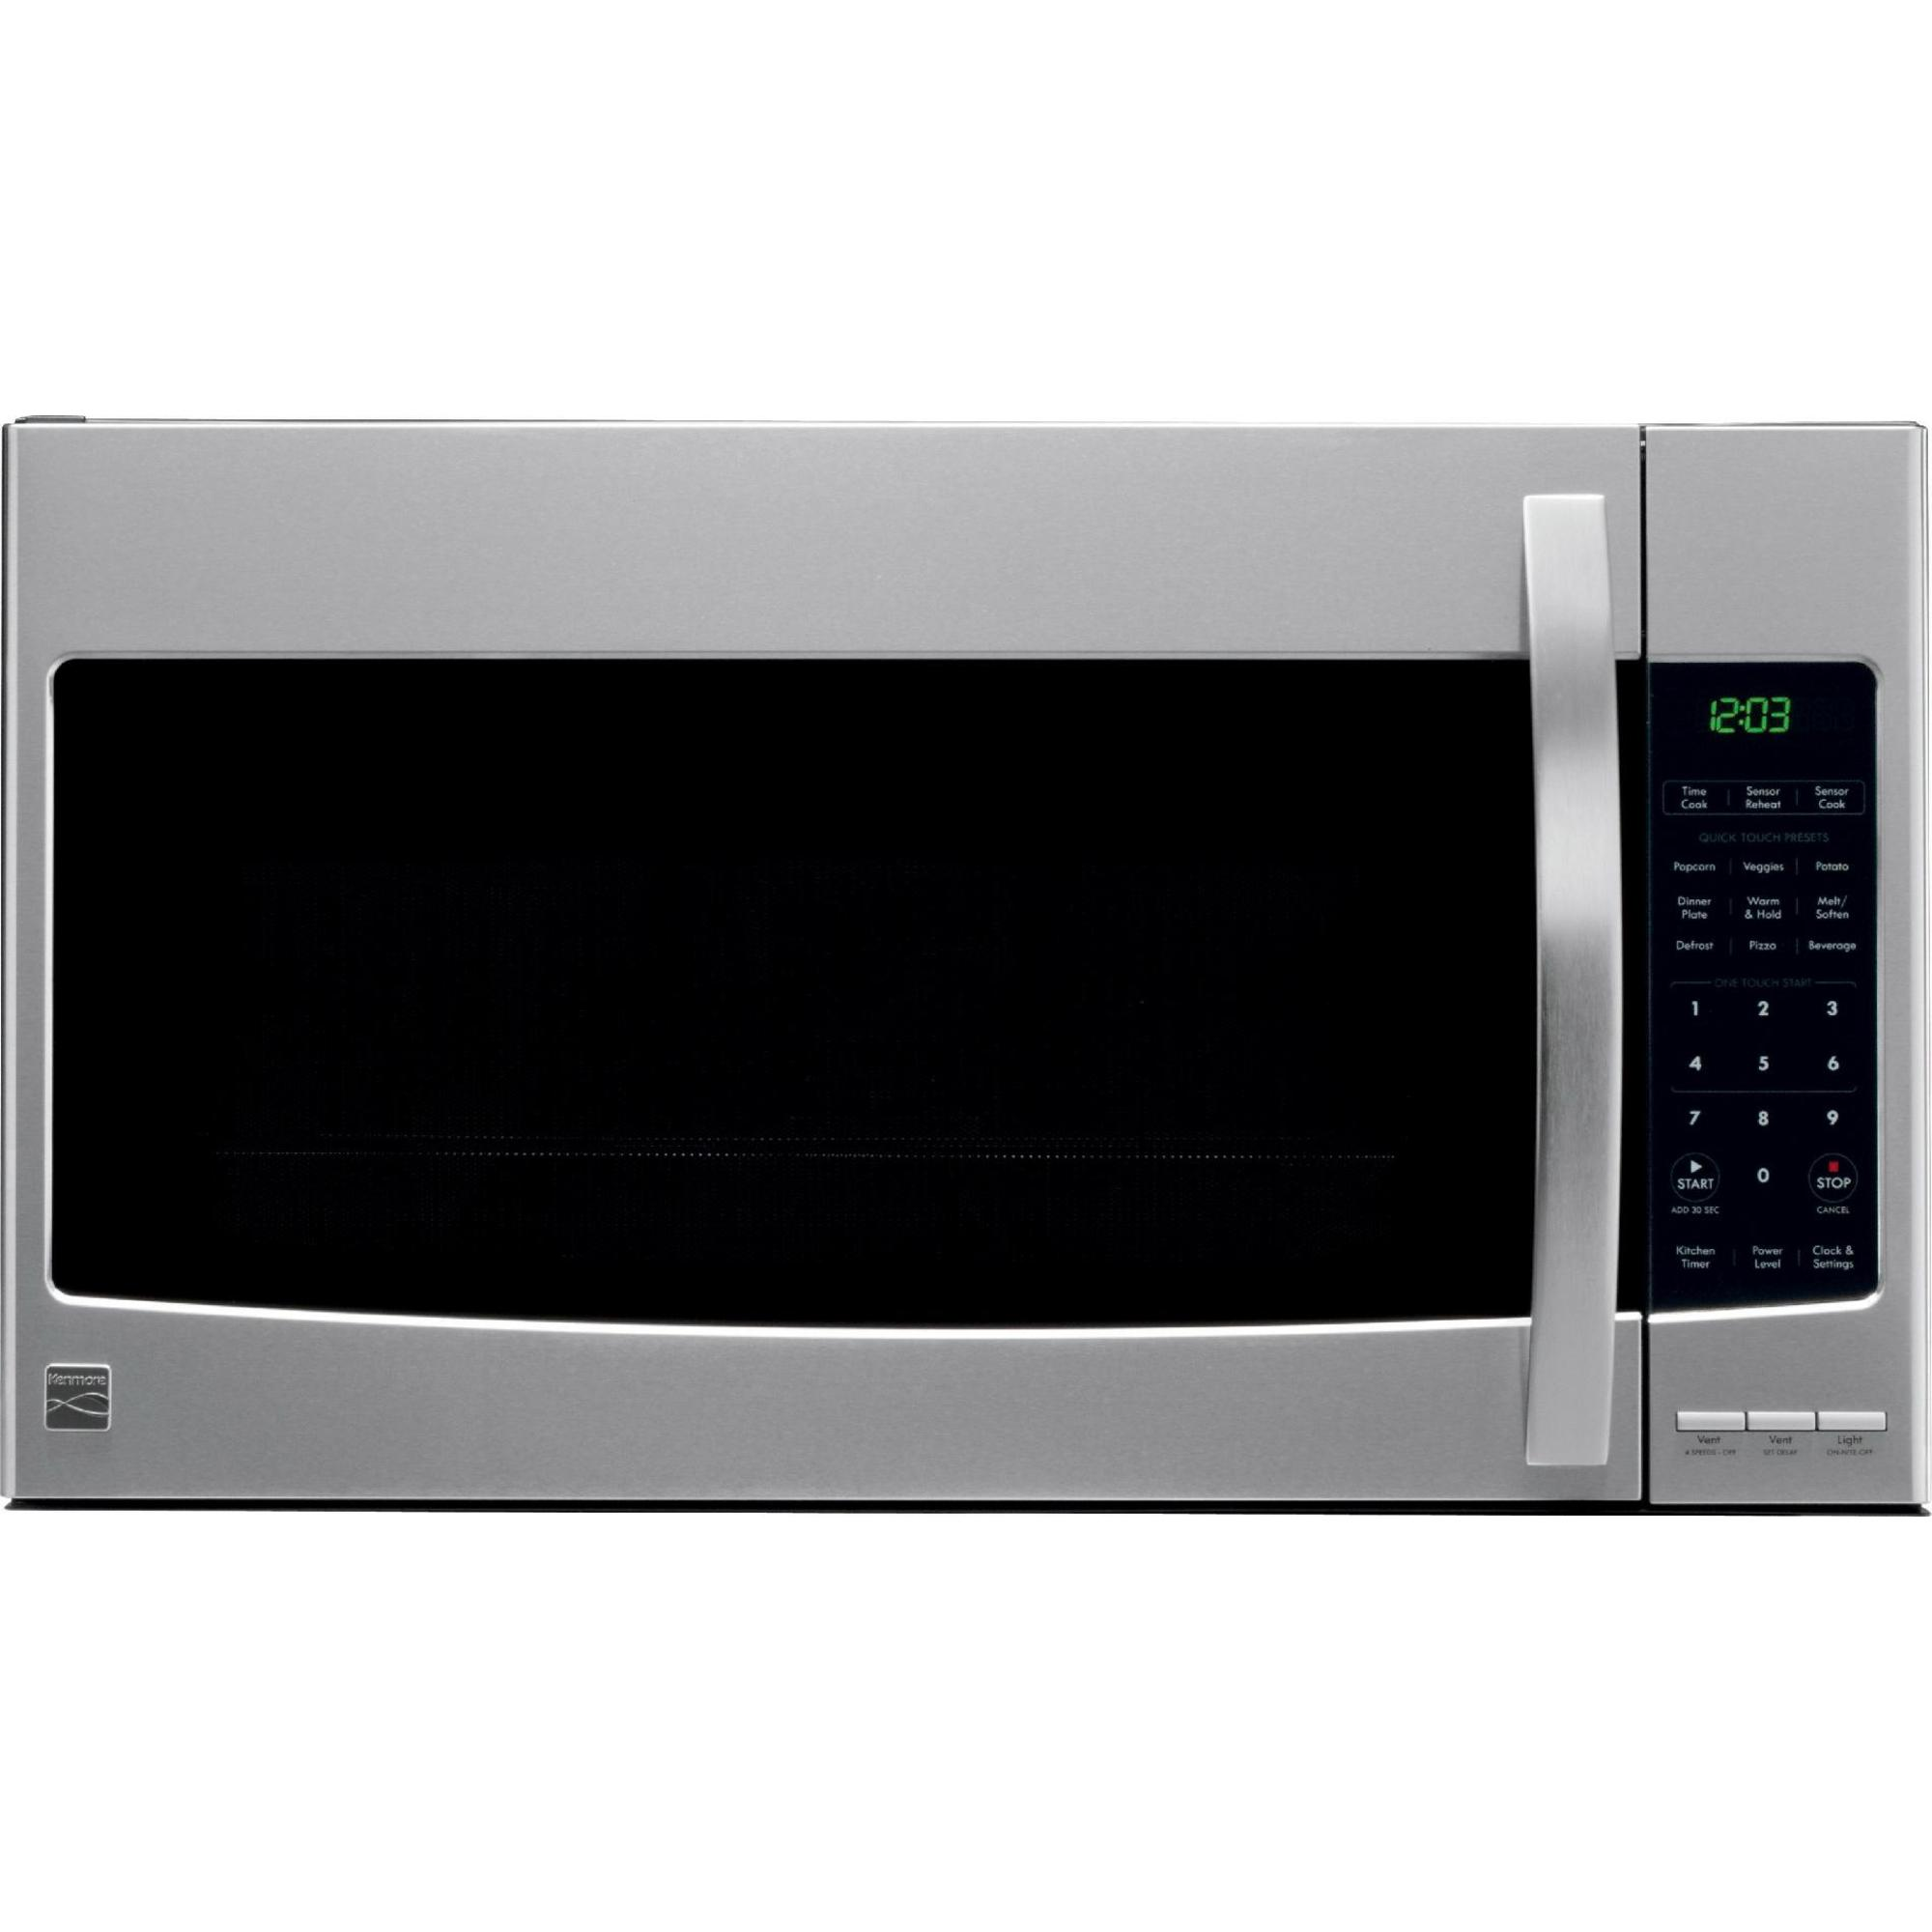 80353-2-1-cu-ft-Over-the-Range-Microwave-Stainless-Steel